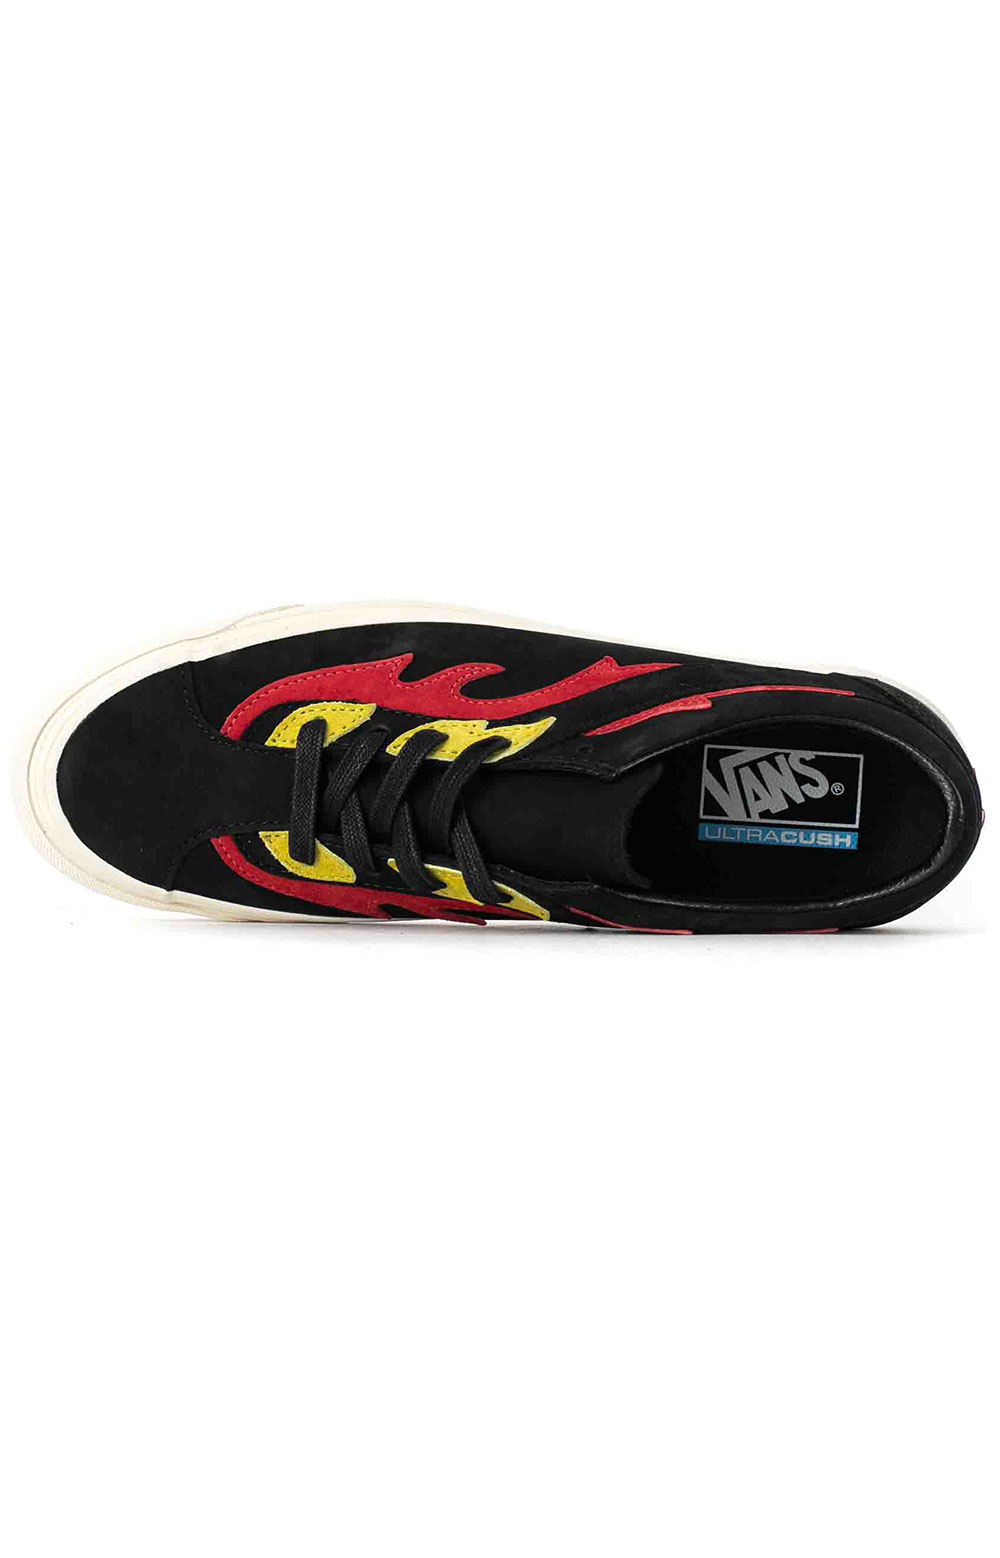 (4UVR1C0) Flamethrower Bold Ni FT Shoes - Black/Red 2